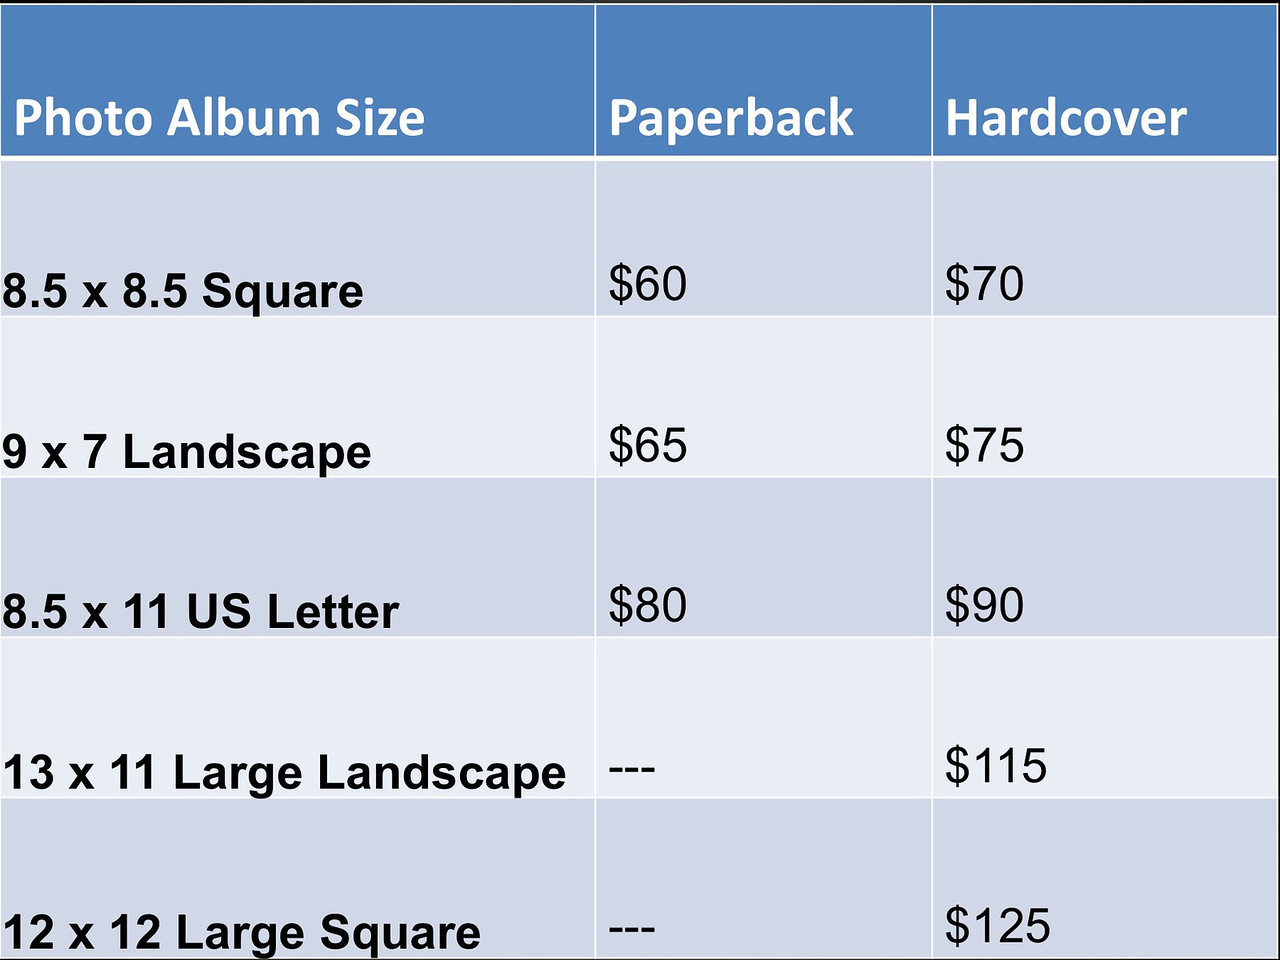 "<H2>Photo Book Pricing</h2> Pricing for our standard 20 page photo albums is shown.  Average $2 per photo. Prices shown do not include tax, S&H, or online processing fee.  Extra pages will incur an additional charge.    Check the Order Form to see current discounts and specials.  If you have a different idea for your photo book, custom photo albums are also offered.  <a href=""mailto:sales@metrosportsimages.com?subject=Email from Metro Sports Images website"">Email</a> or call us to inquire.<H2><a href=""https://secure.jotform.com/form/10955517919"">ORDER A PHOTO BOOK </a></H2>"